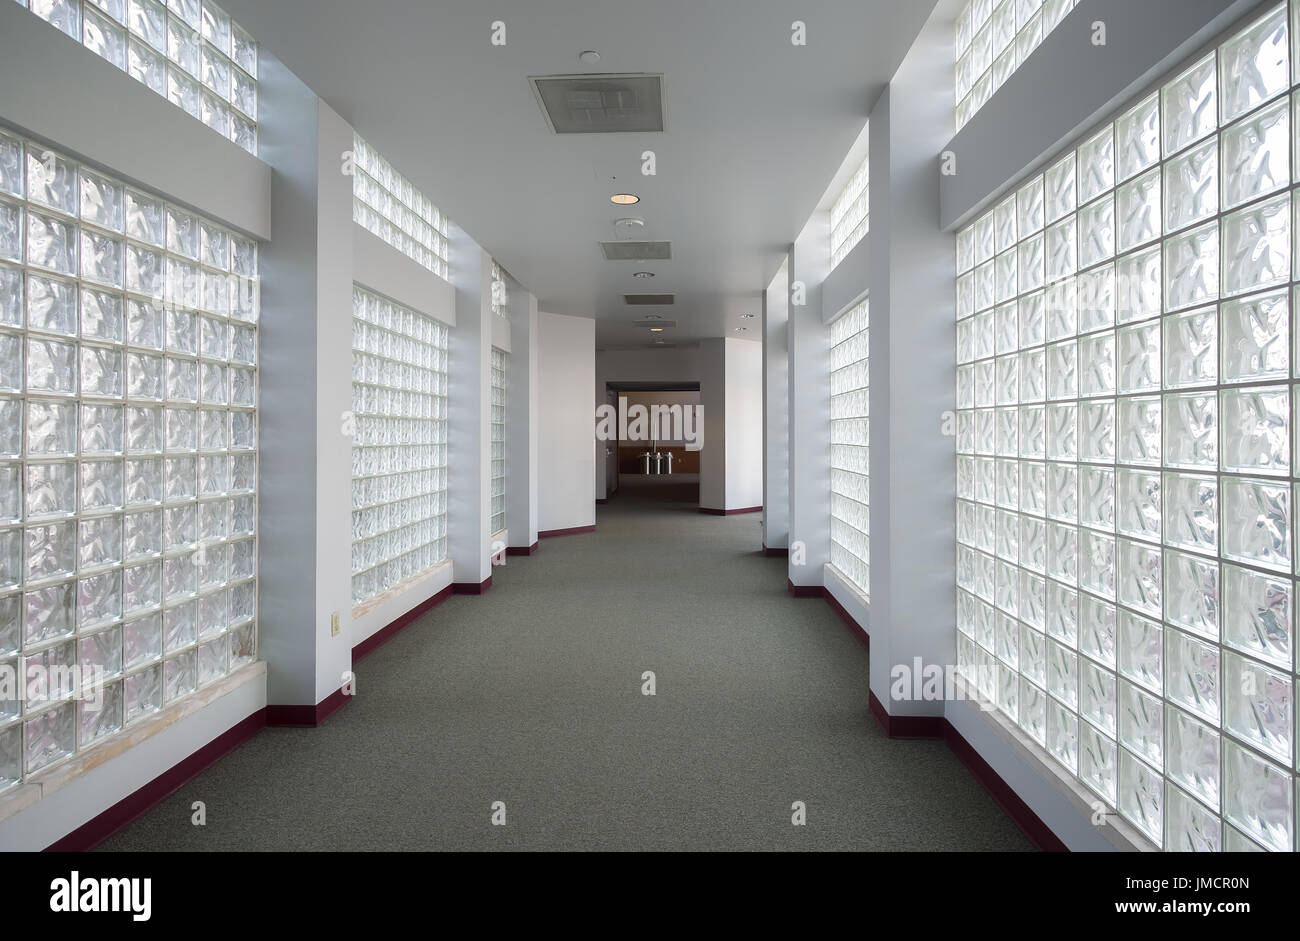 Office natural light Interior Glass Block Walls Fill Hallway With Natural Light Office Building Alamy Glass Block Walls Fill Hallway With Natural Light Office Building